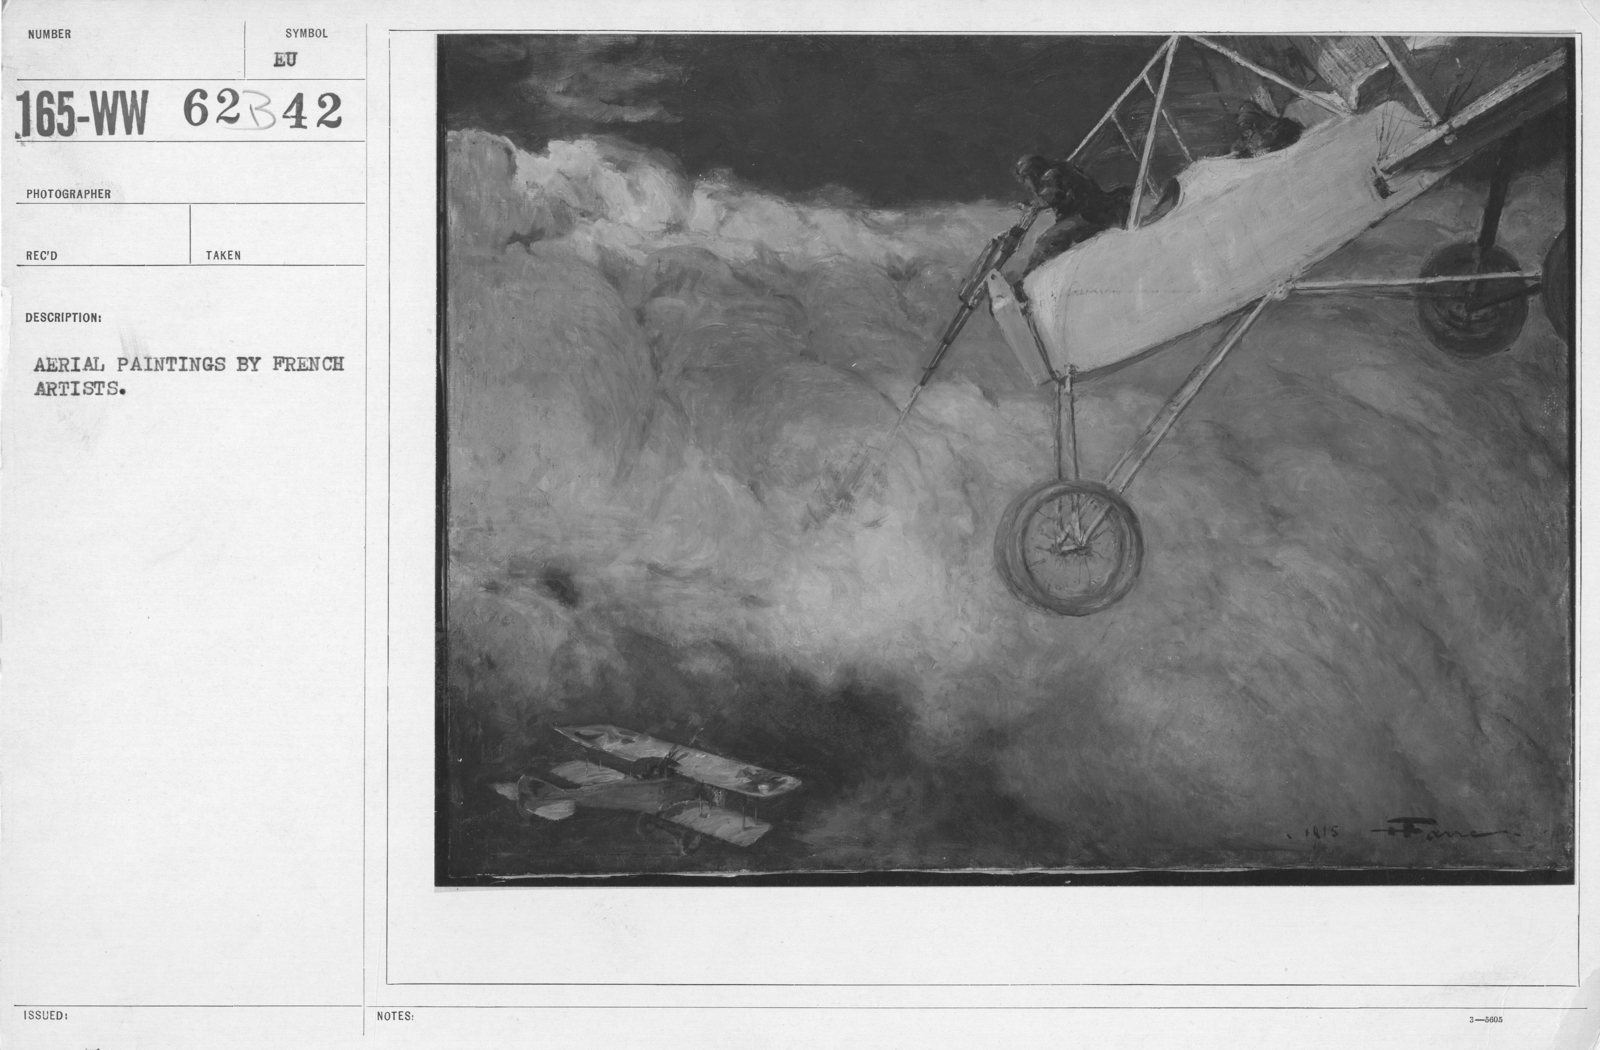 Artists - French Artworks - Aerial paintings by French artists